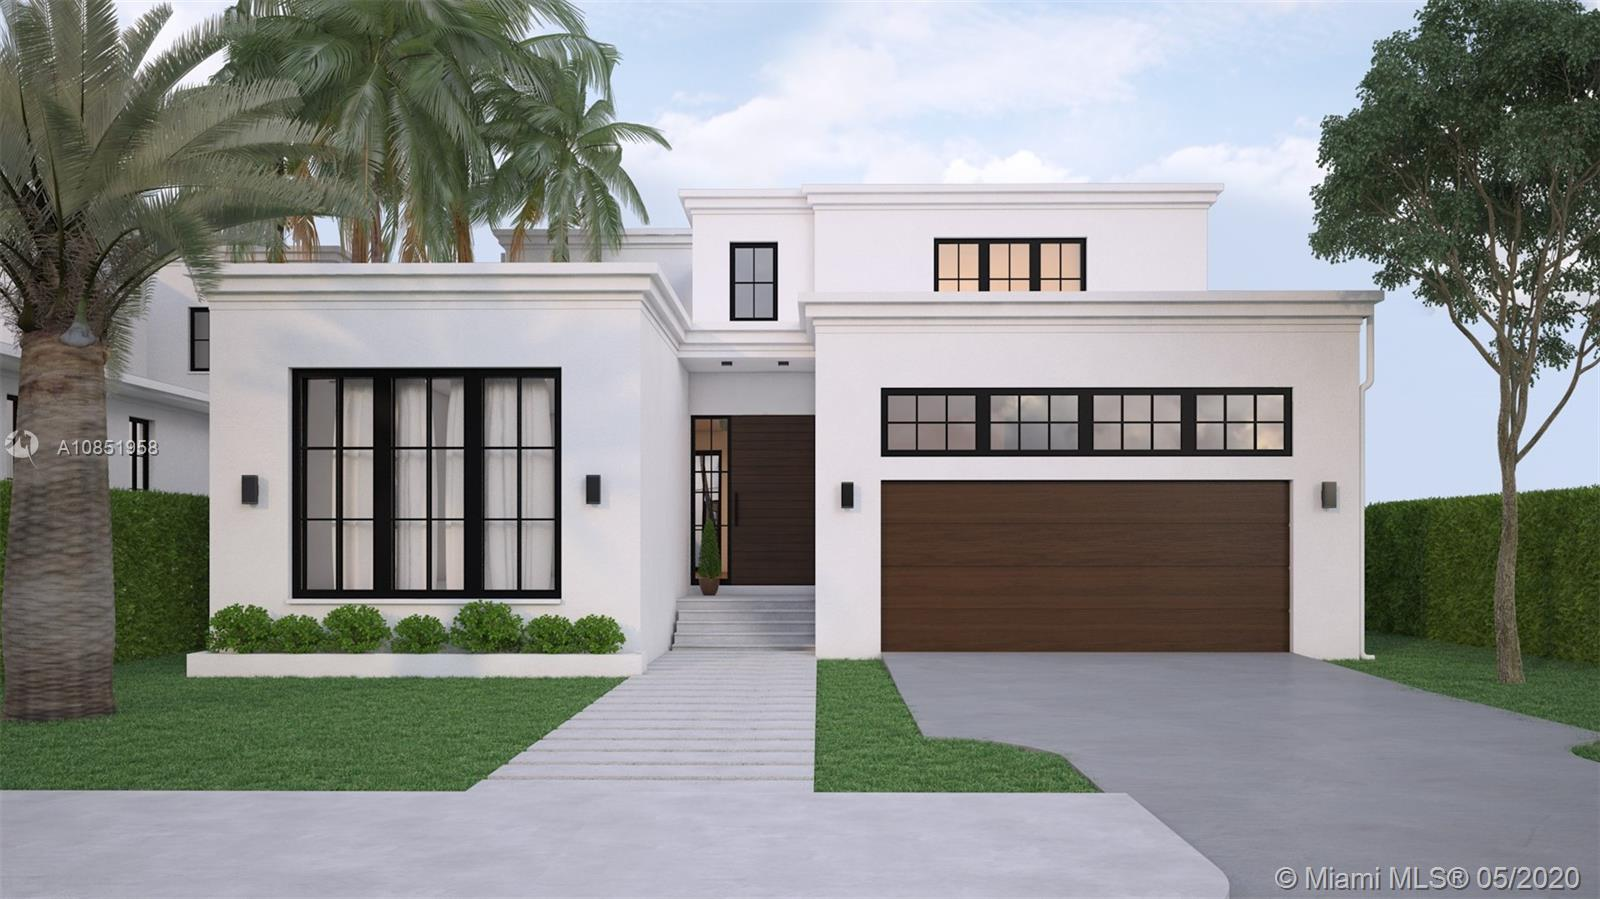 895 NE 76th St, Miami, Florida 33138, 5 Bedrooms Bedrooms, ,5 BathroomsBathrooms,Residential,For Sale,895 NE 76th St,A10851958